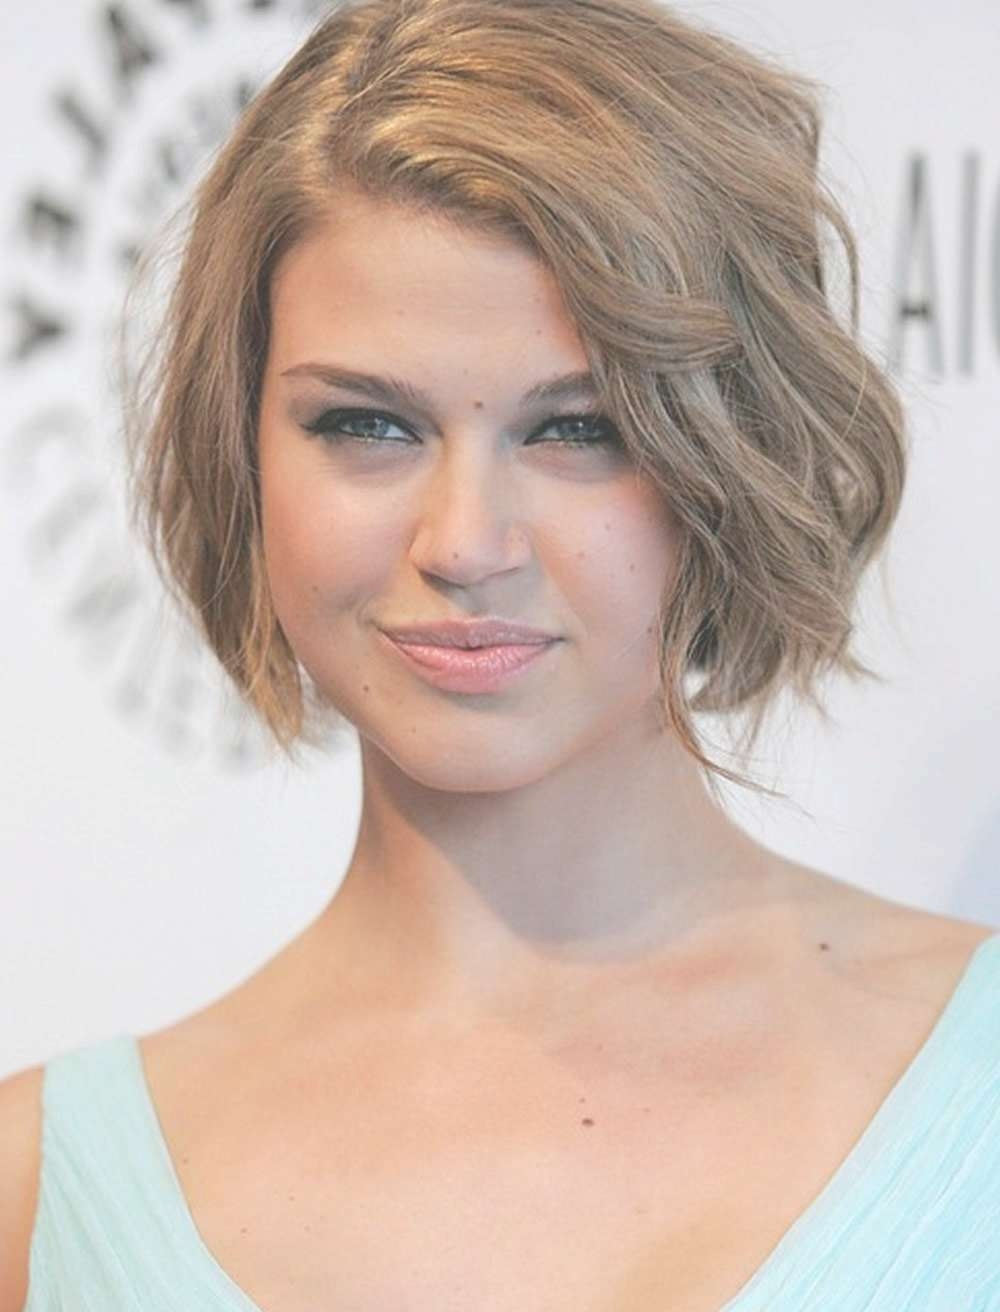 The Best 30 Short Bob Haircuts – 2018 Short Hairstyles For Women With Most Popular Bob And Pixie Hairstyles (View 9 of 16)